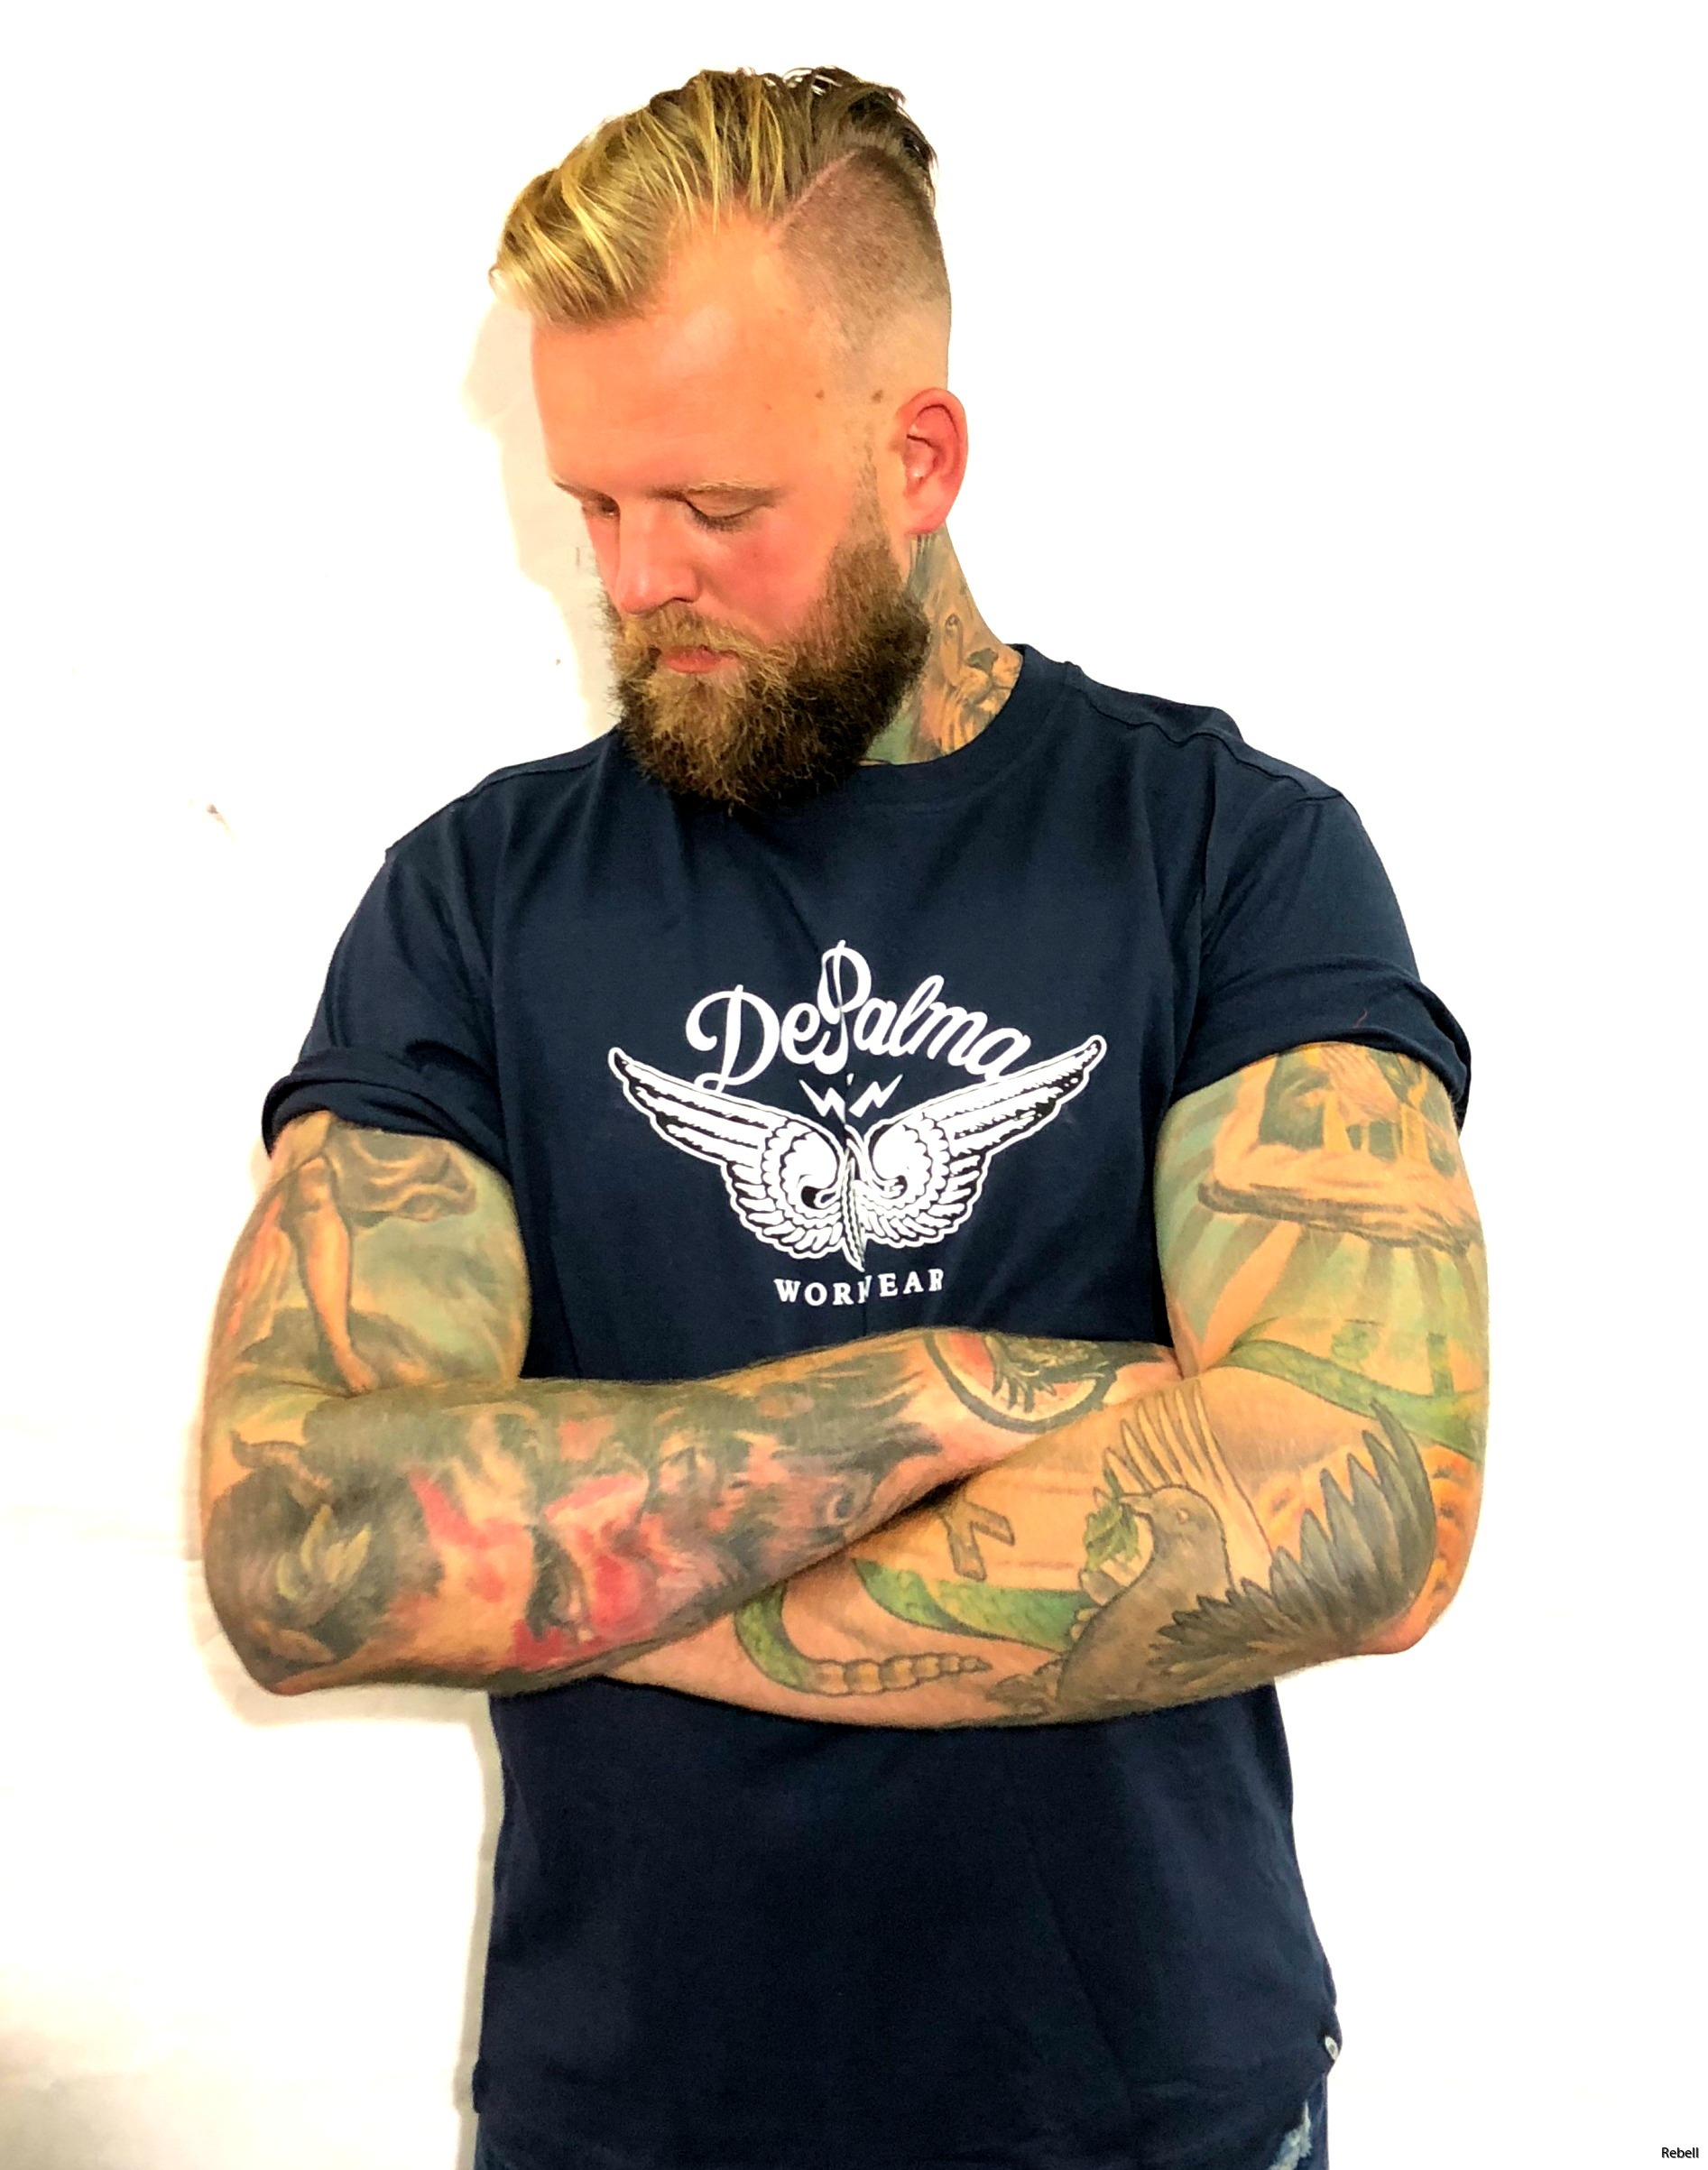 Wheels retro inspo Depalma workwear chopper chopped car custom tshirt rebell rebellskövde rebellkläder  bilar hotrods motor